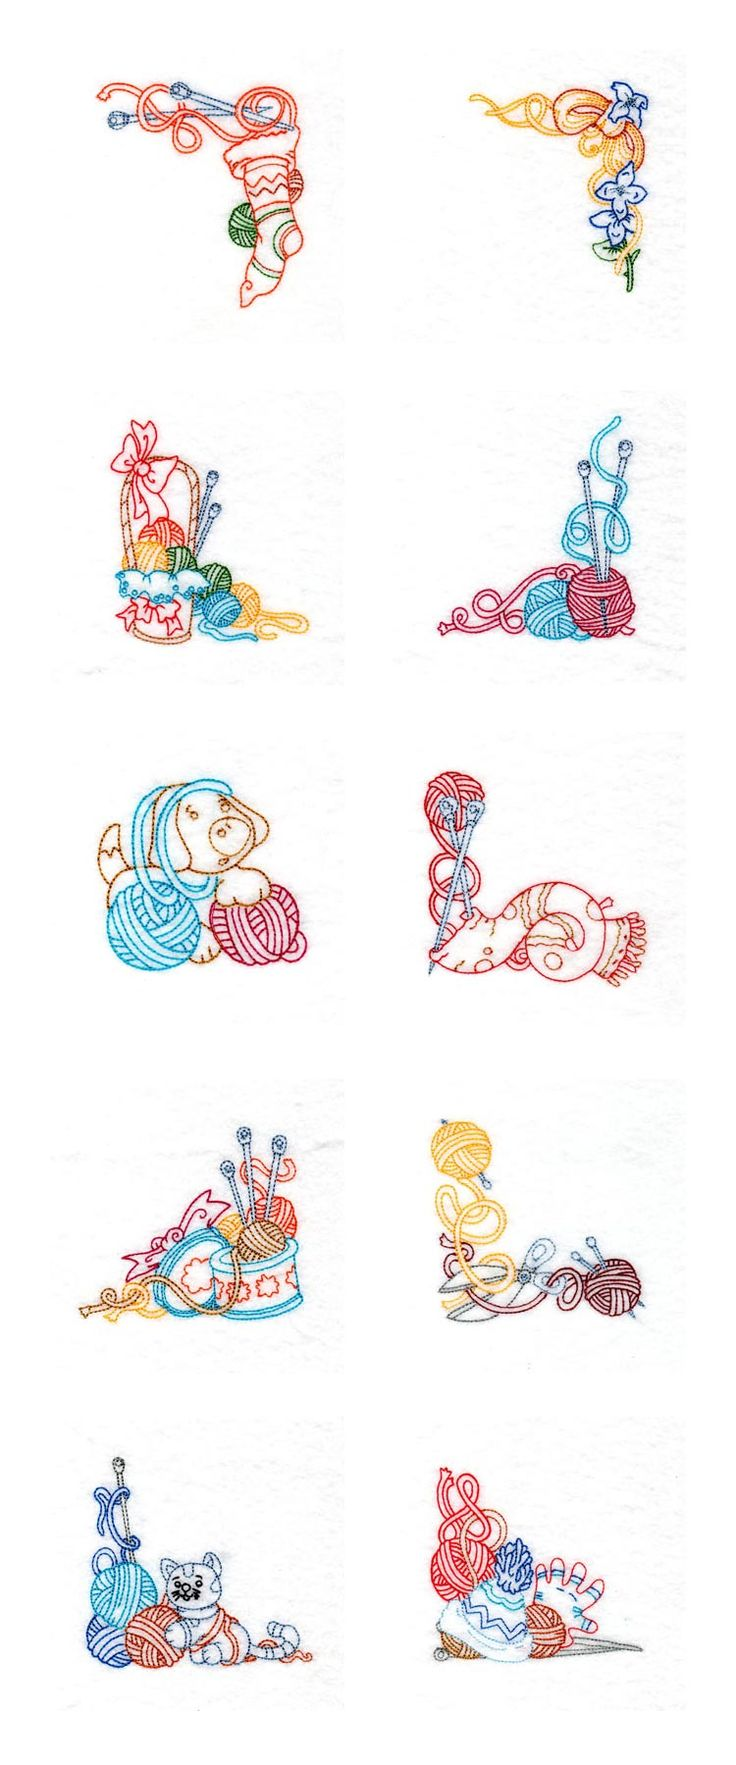 Colorwork knitting embroidery machine design details